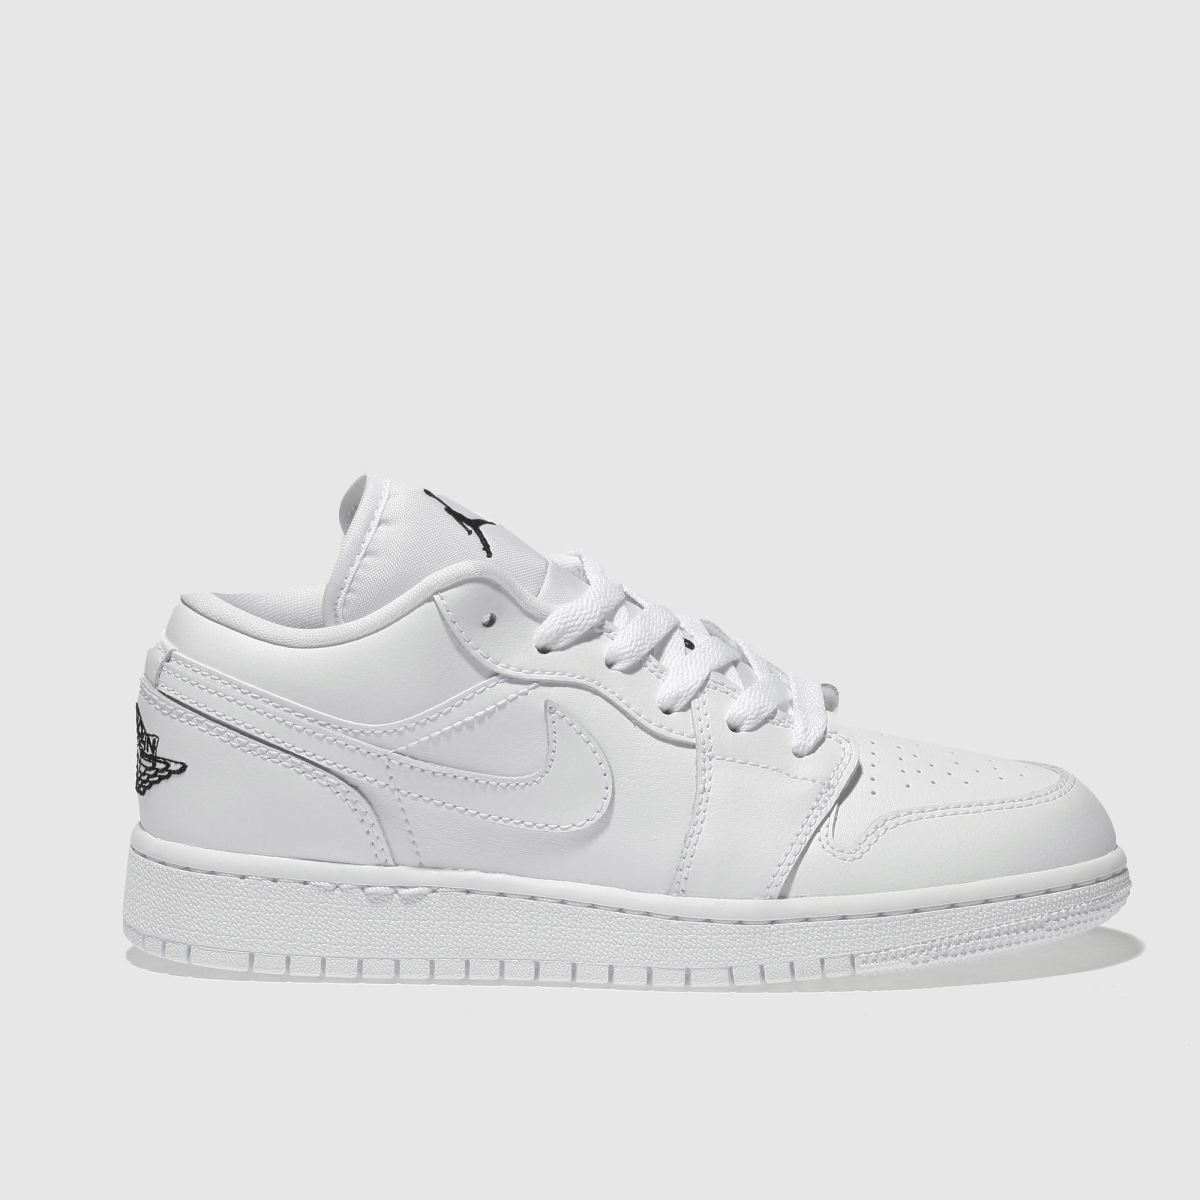 nike jordan Nike Jordan  White & Black Nike Jordan 1 Low Youth Trainers